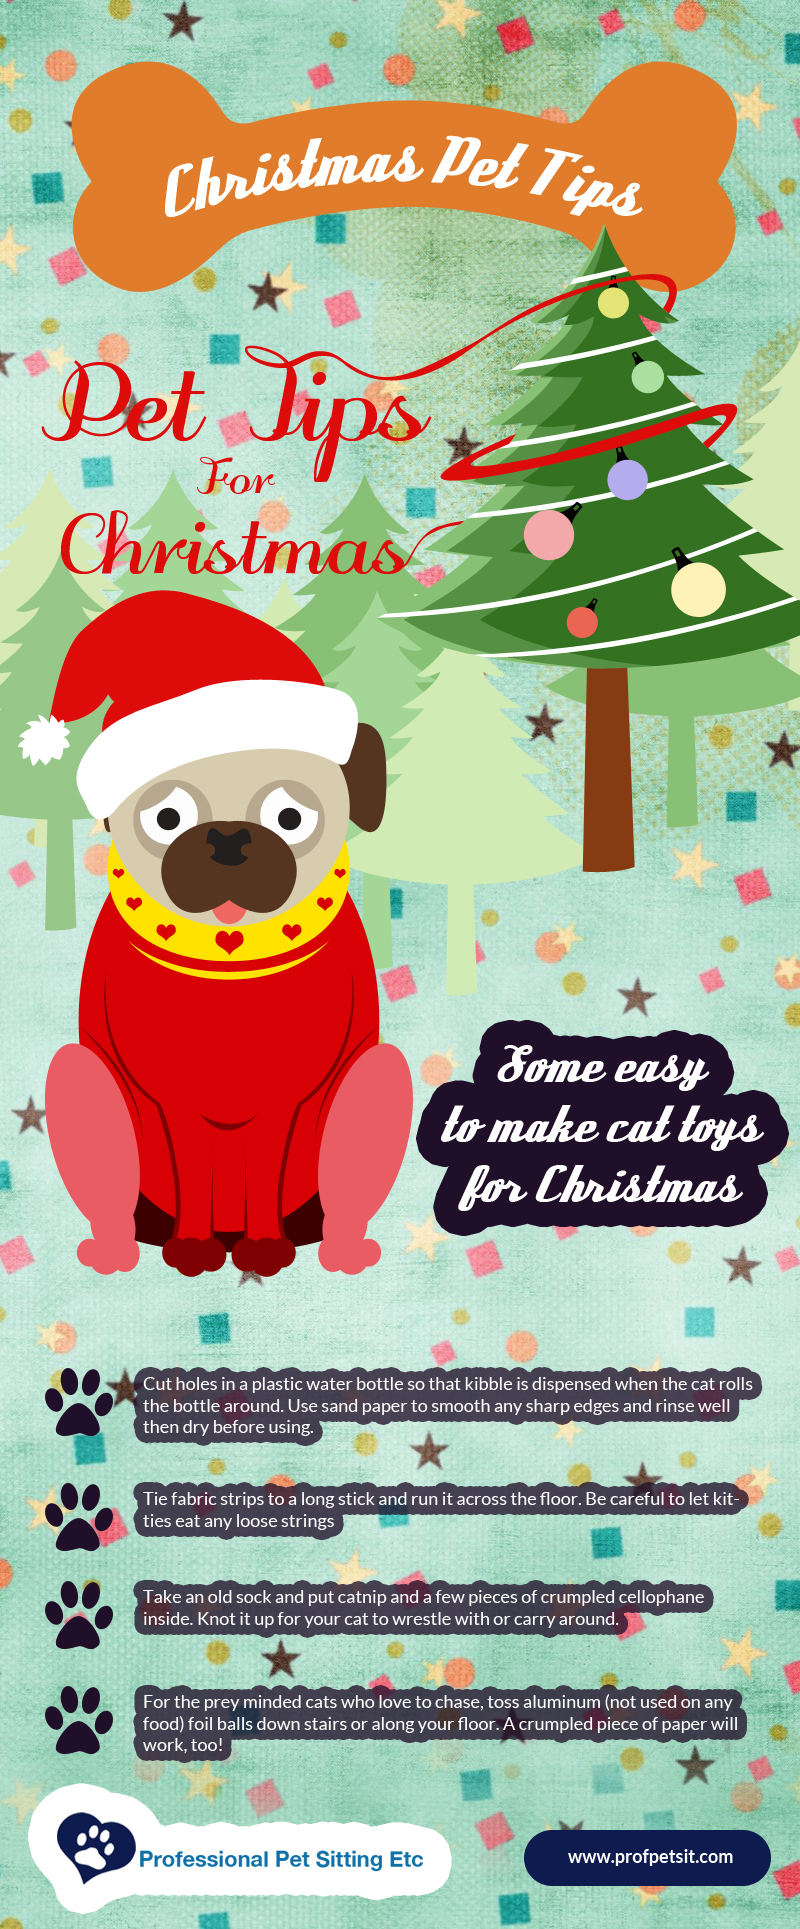 info graphic christmas pet tips professional pet sitting etc